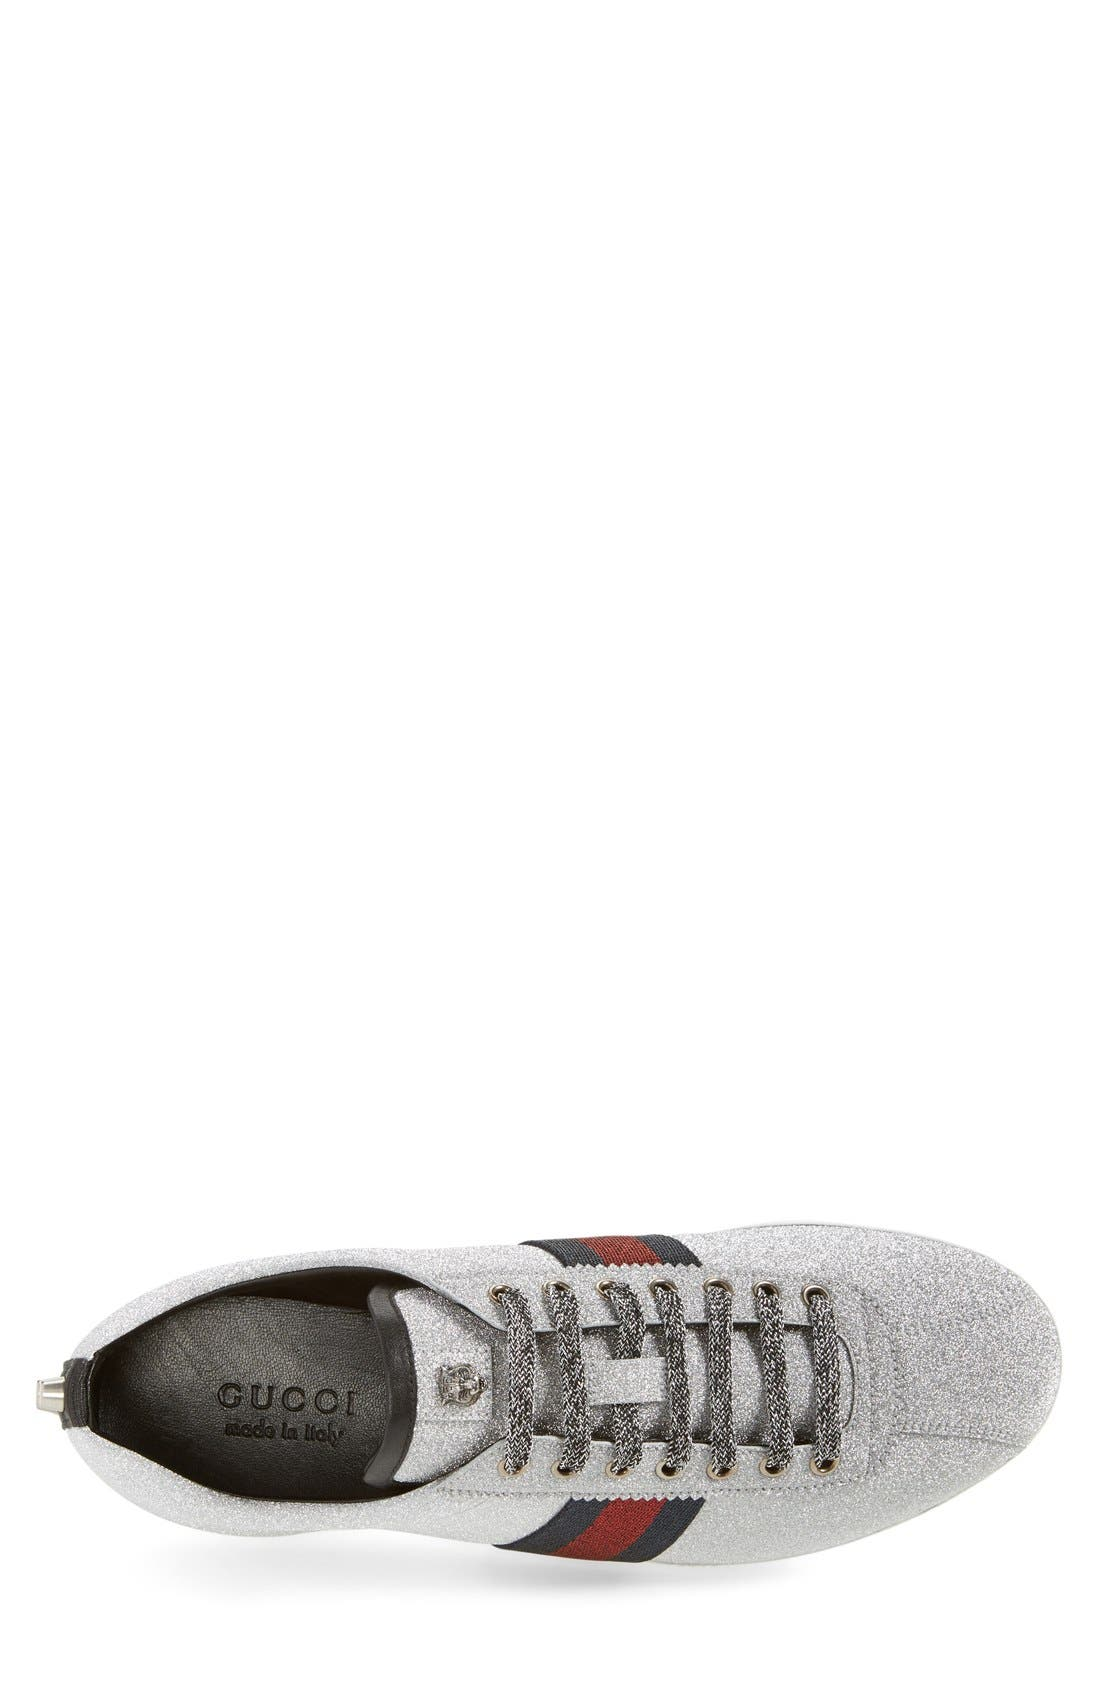 Bambi Lace-Up Sneaker,                             Alternate thumbnail 3, color,                             ARGENTO FABRIC